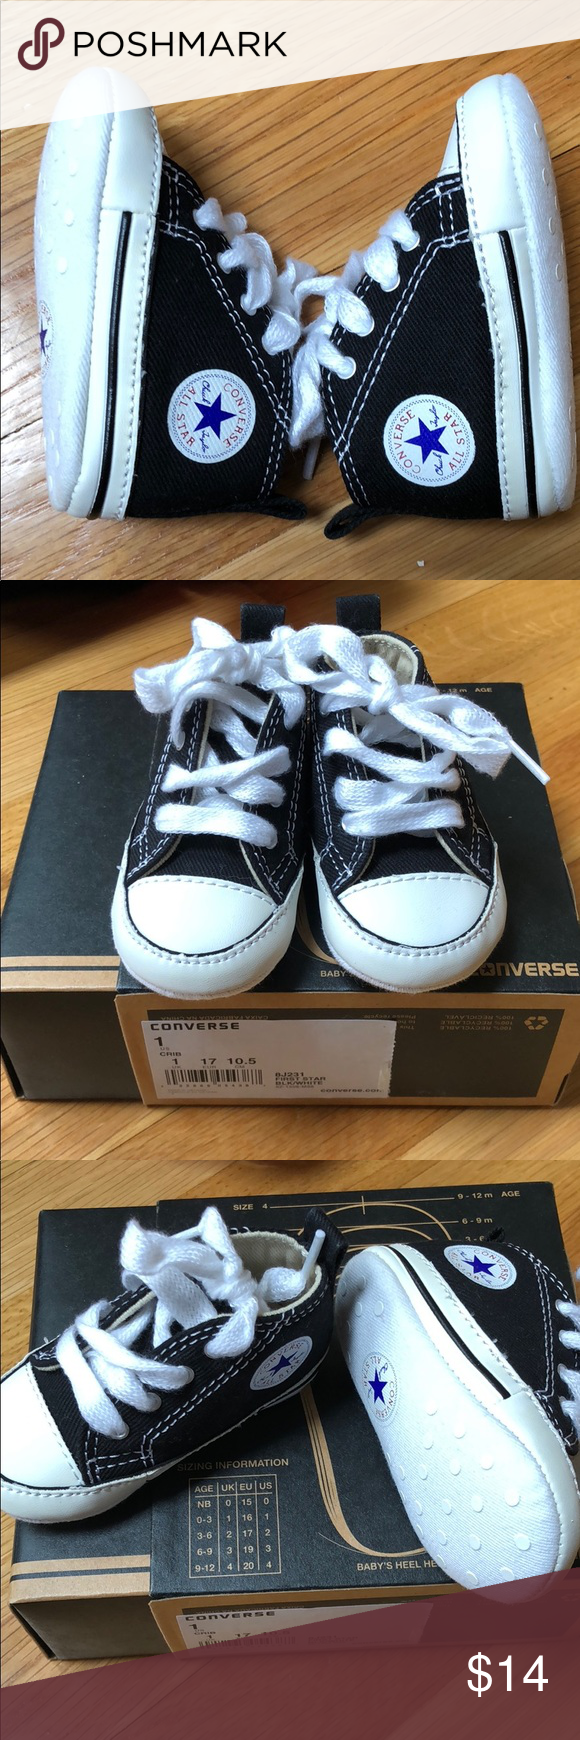 8f08de0743b9 NEW Baby Converse First All Star size 1 New never worn! Blacks and white infant  converse soft sole sneakers. Size 1 (0-3 months). Comes in original box.